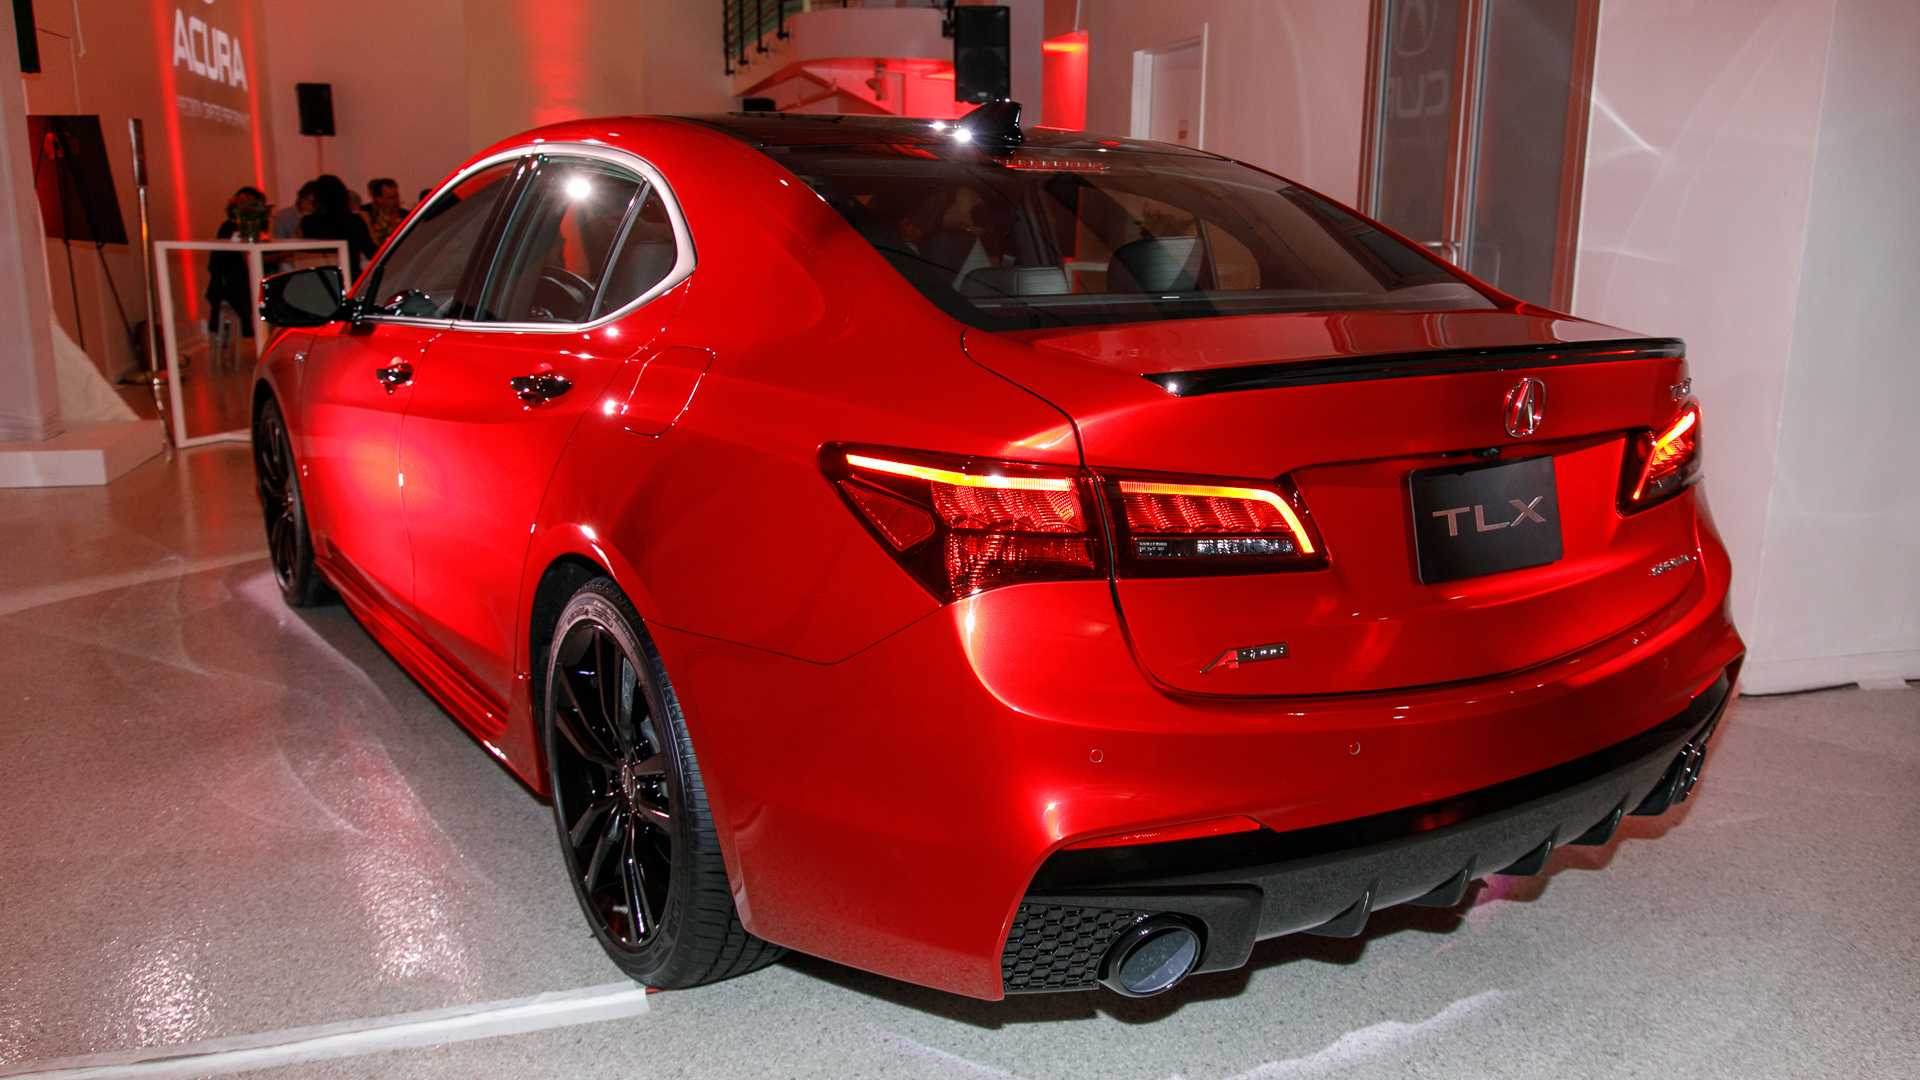 46 Great 2020 Acura Tlx Pmc Edition Specs Price and Review for 2020 Acura Tlx Pmc Edition Specs